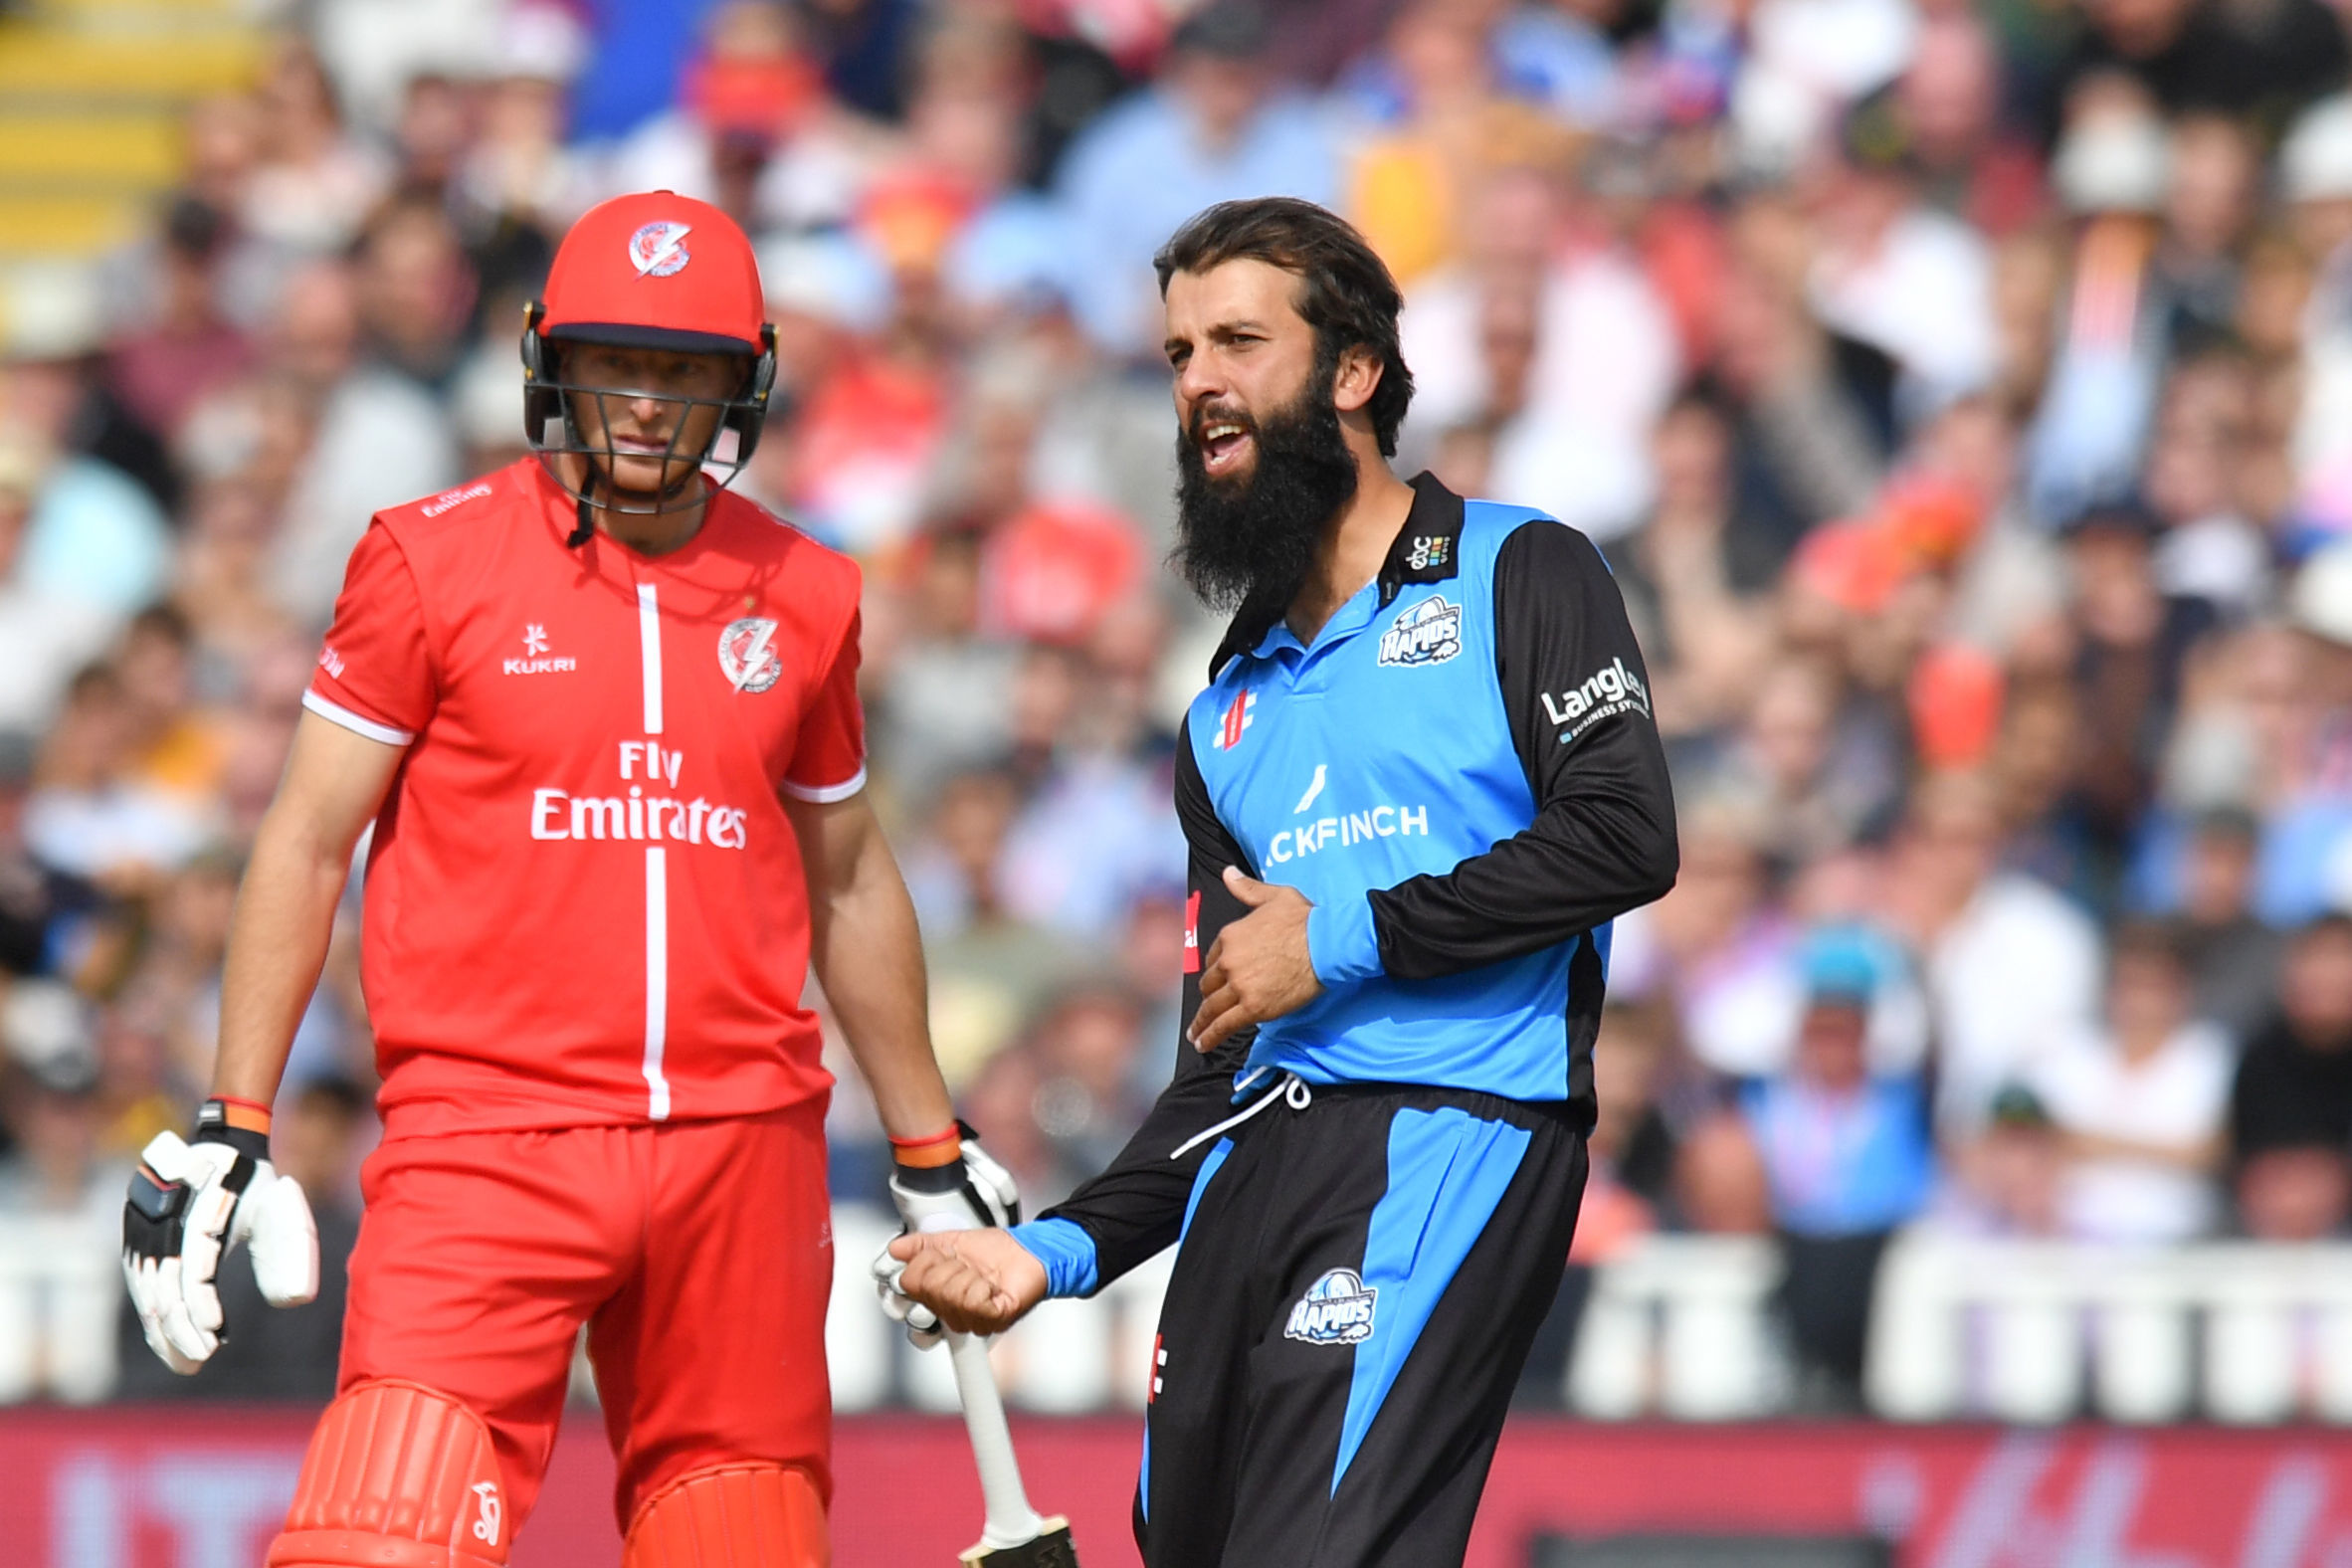 England's Moeen Ali enjoys a wicket for Worcestershire Rapids as they won last year's Vitality T20 Blast. Picture: ANTHONY DEVLIN/PA WIRE